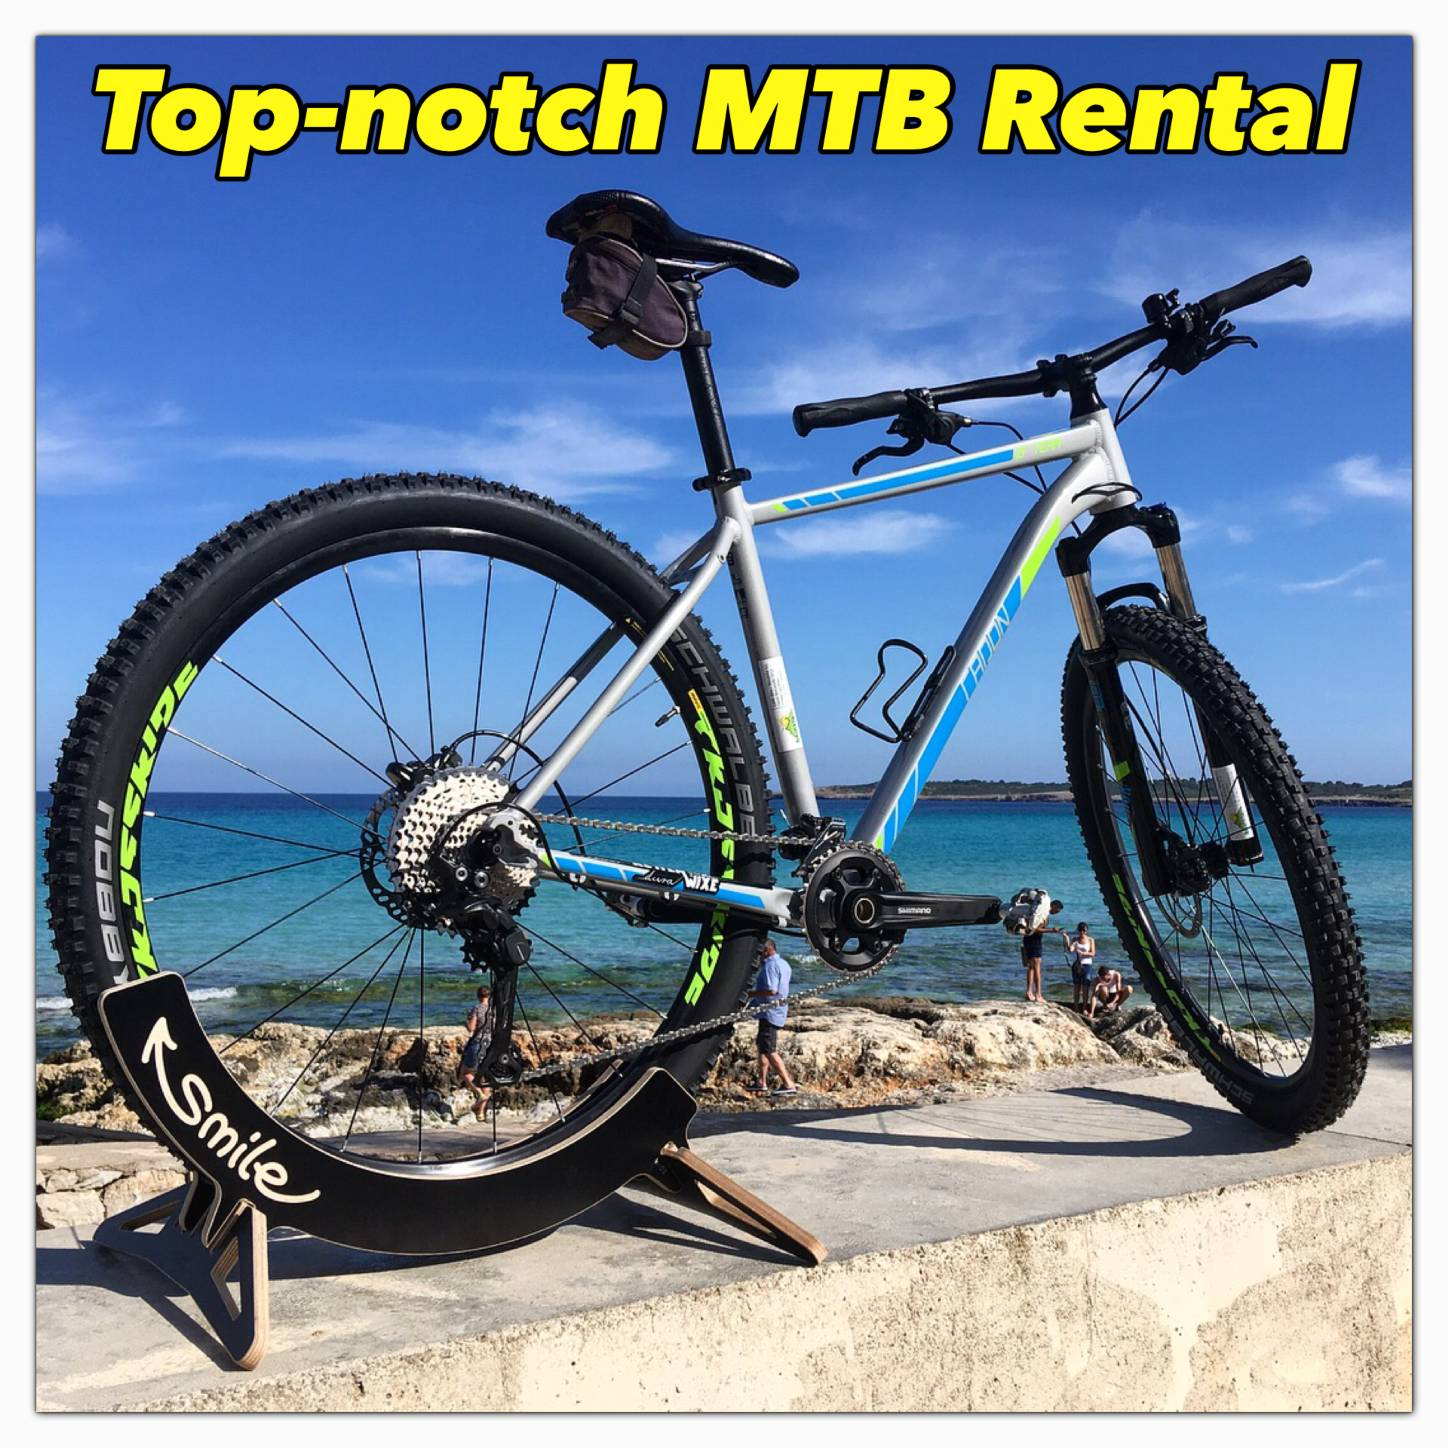 High Quality Mountain Bike Rental in Mallorca